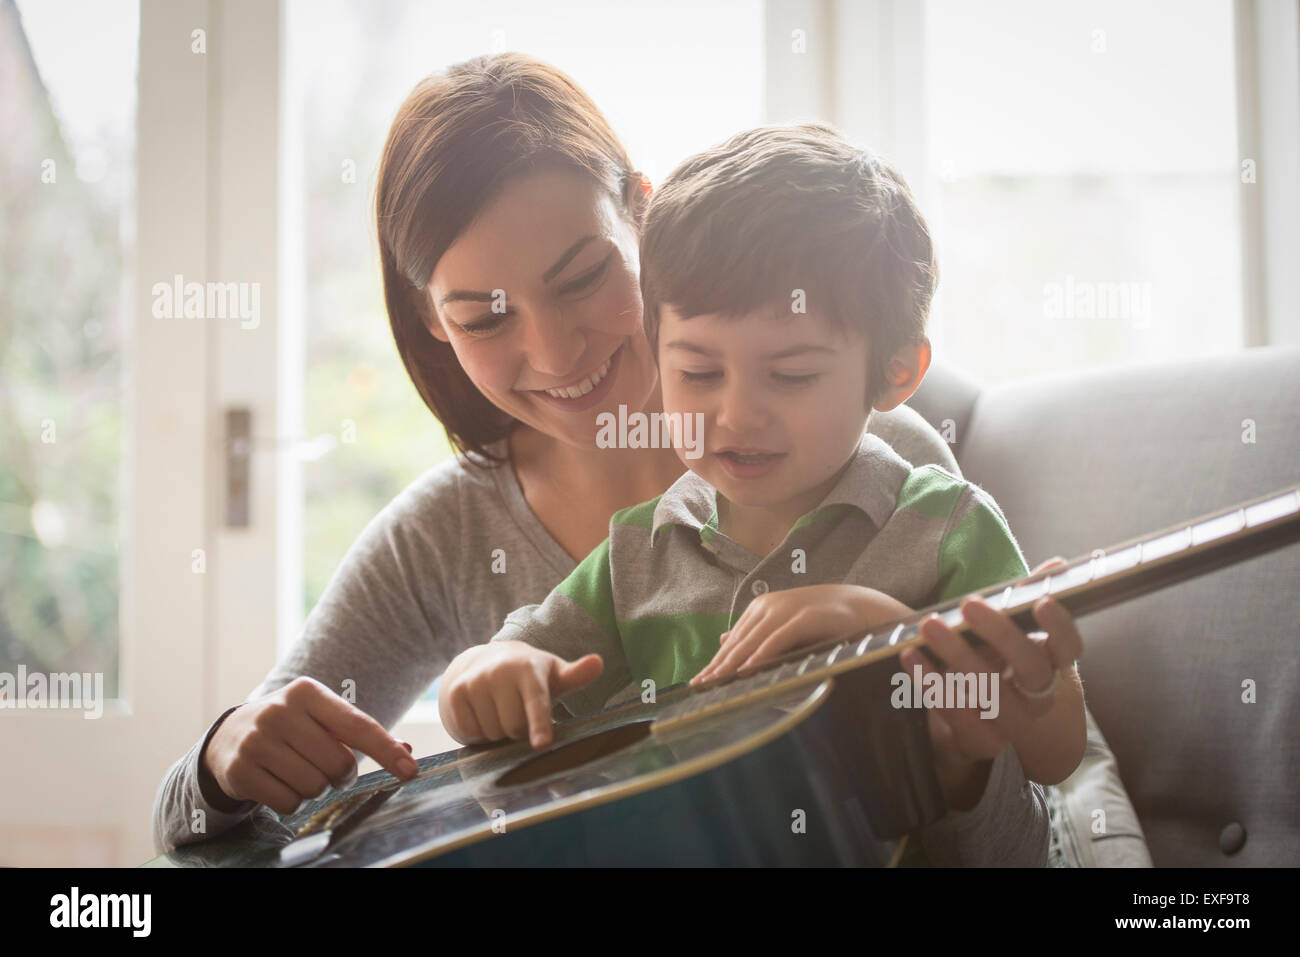 Boy sitting on mother's lap and learning to play guitar Stock Photo